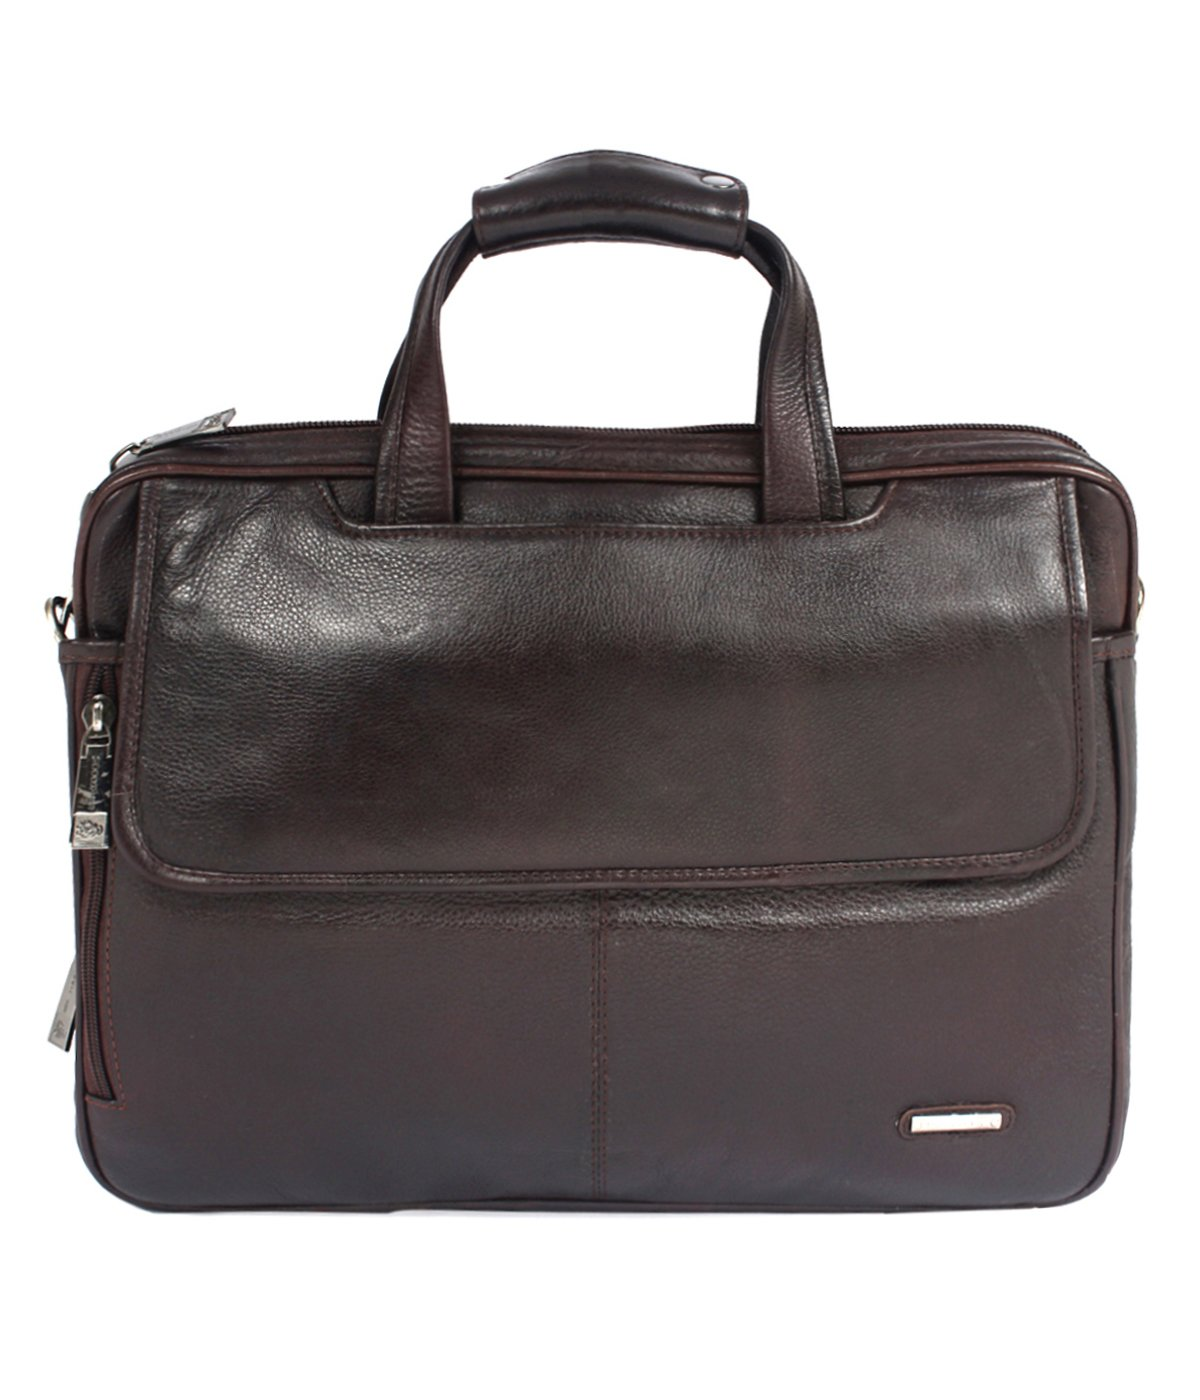 Moochies Pure Leather Office Cum Laptop Bag 18 inch Wide - A Make in India Exquiste Designer Product (B074N42H23) Amazon Price History, Amazon Price Tracker